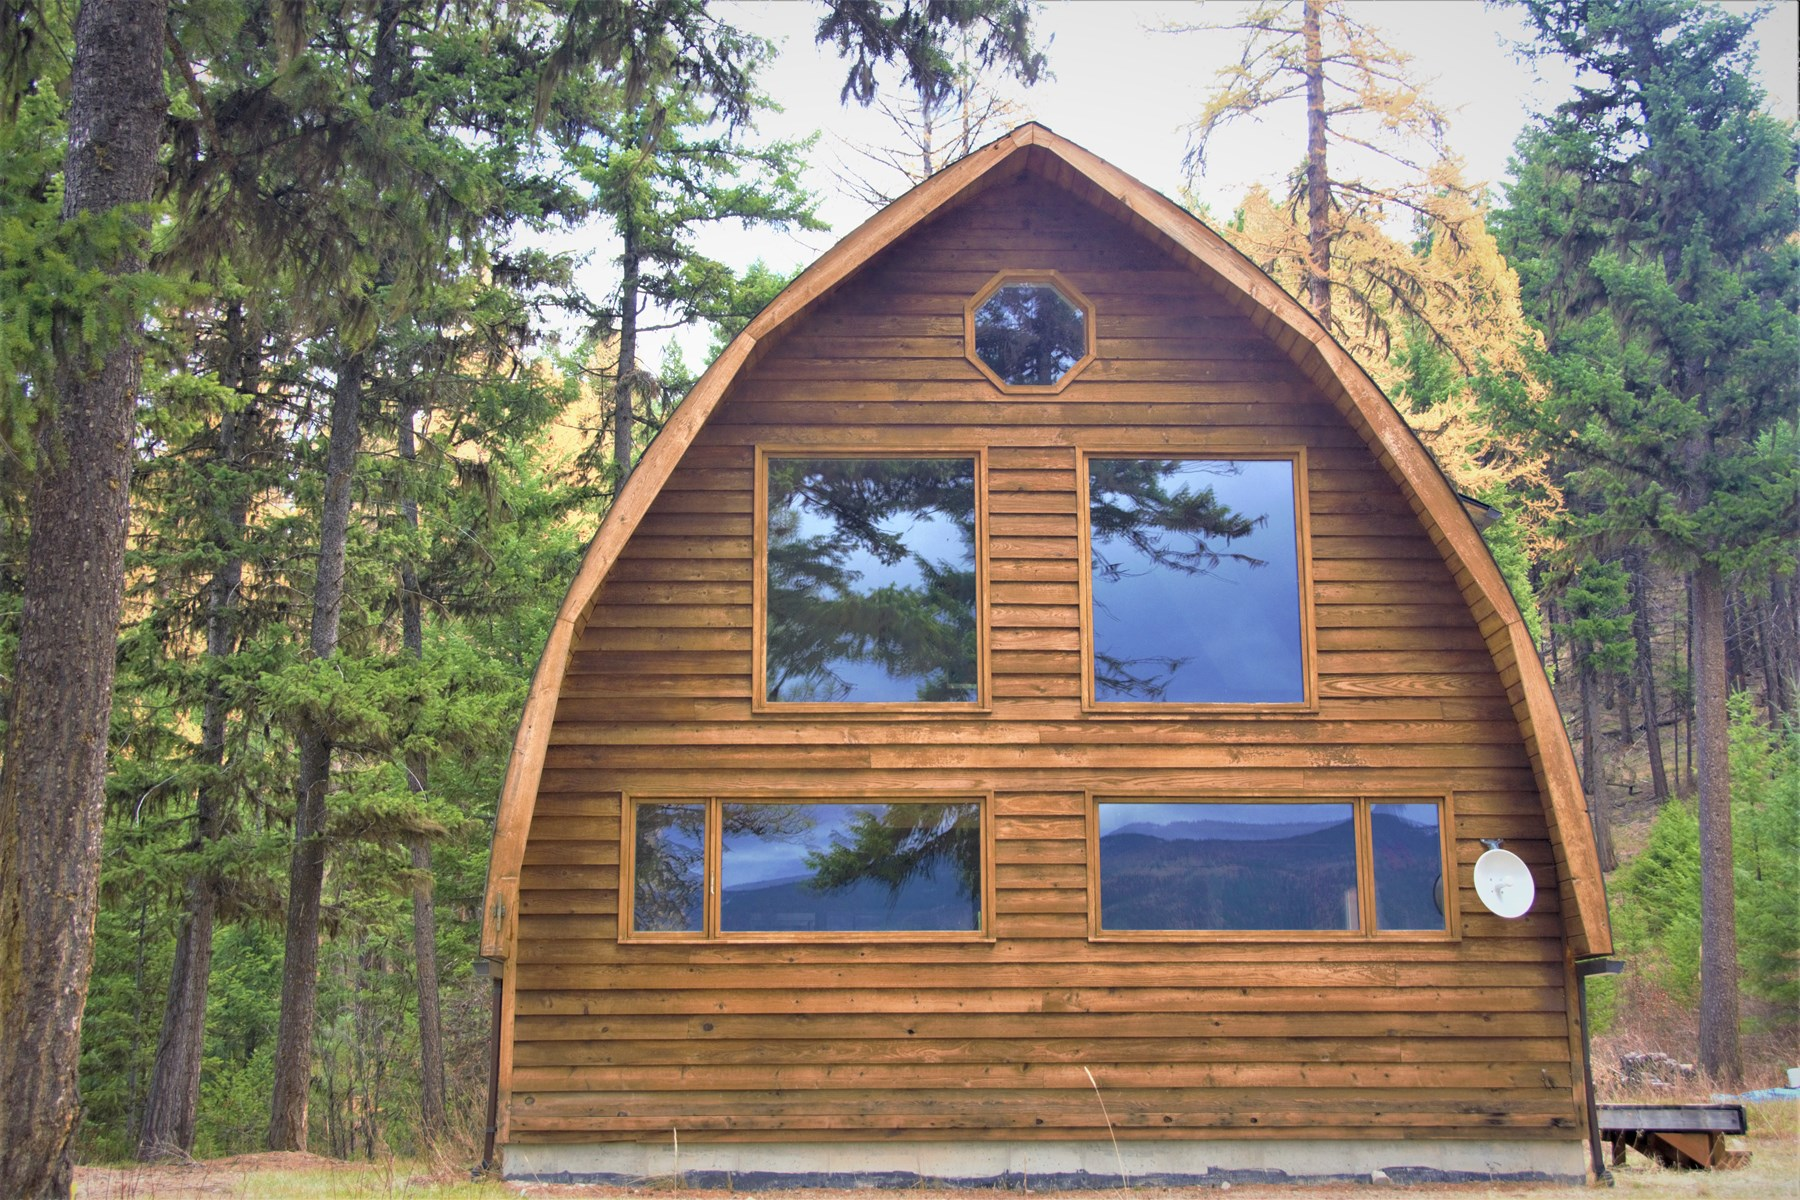 HUNTING PROPERTY WITH CABIN FOR SALE